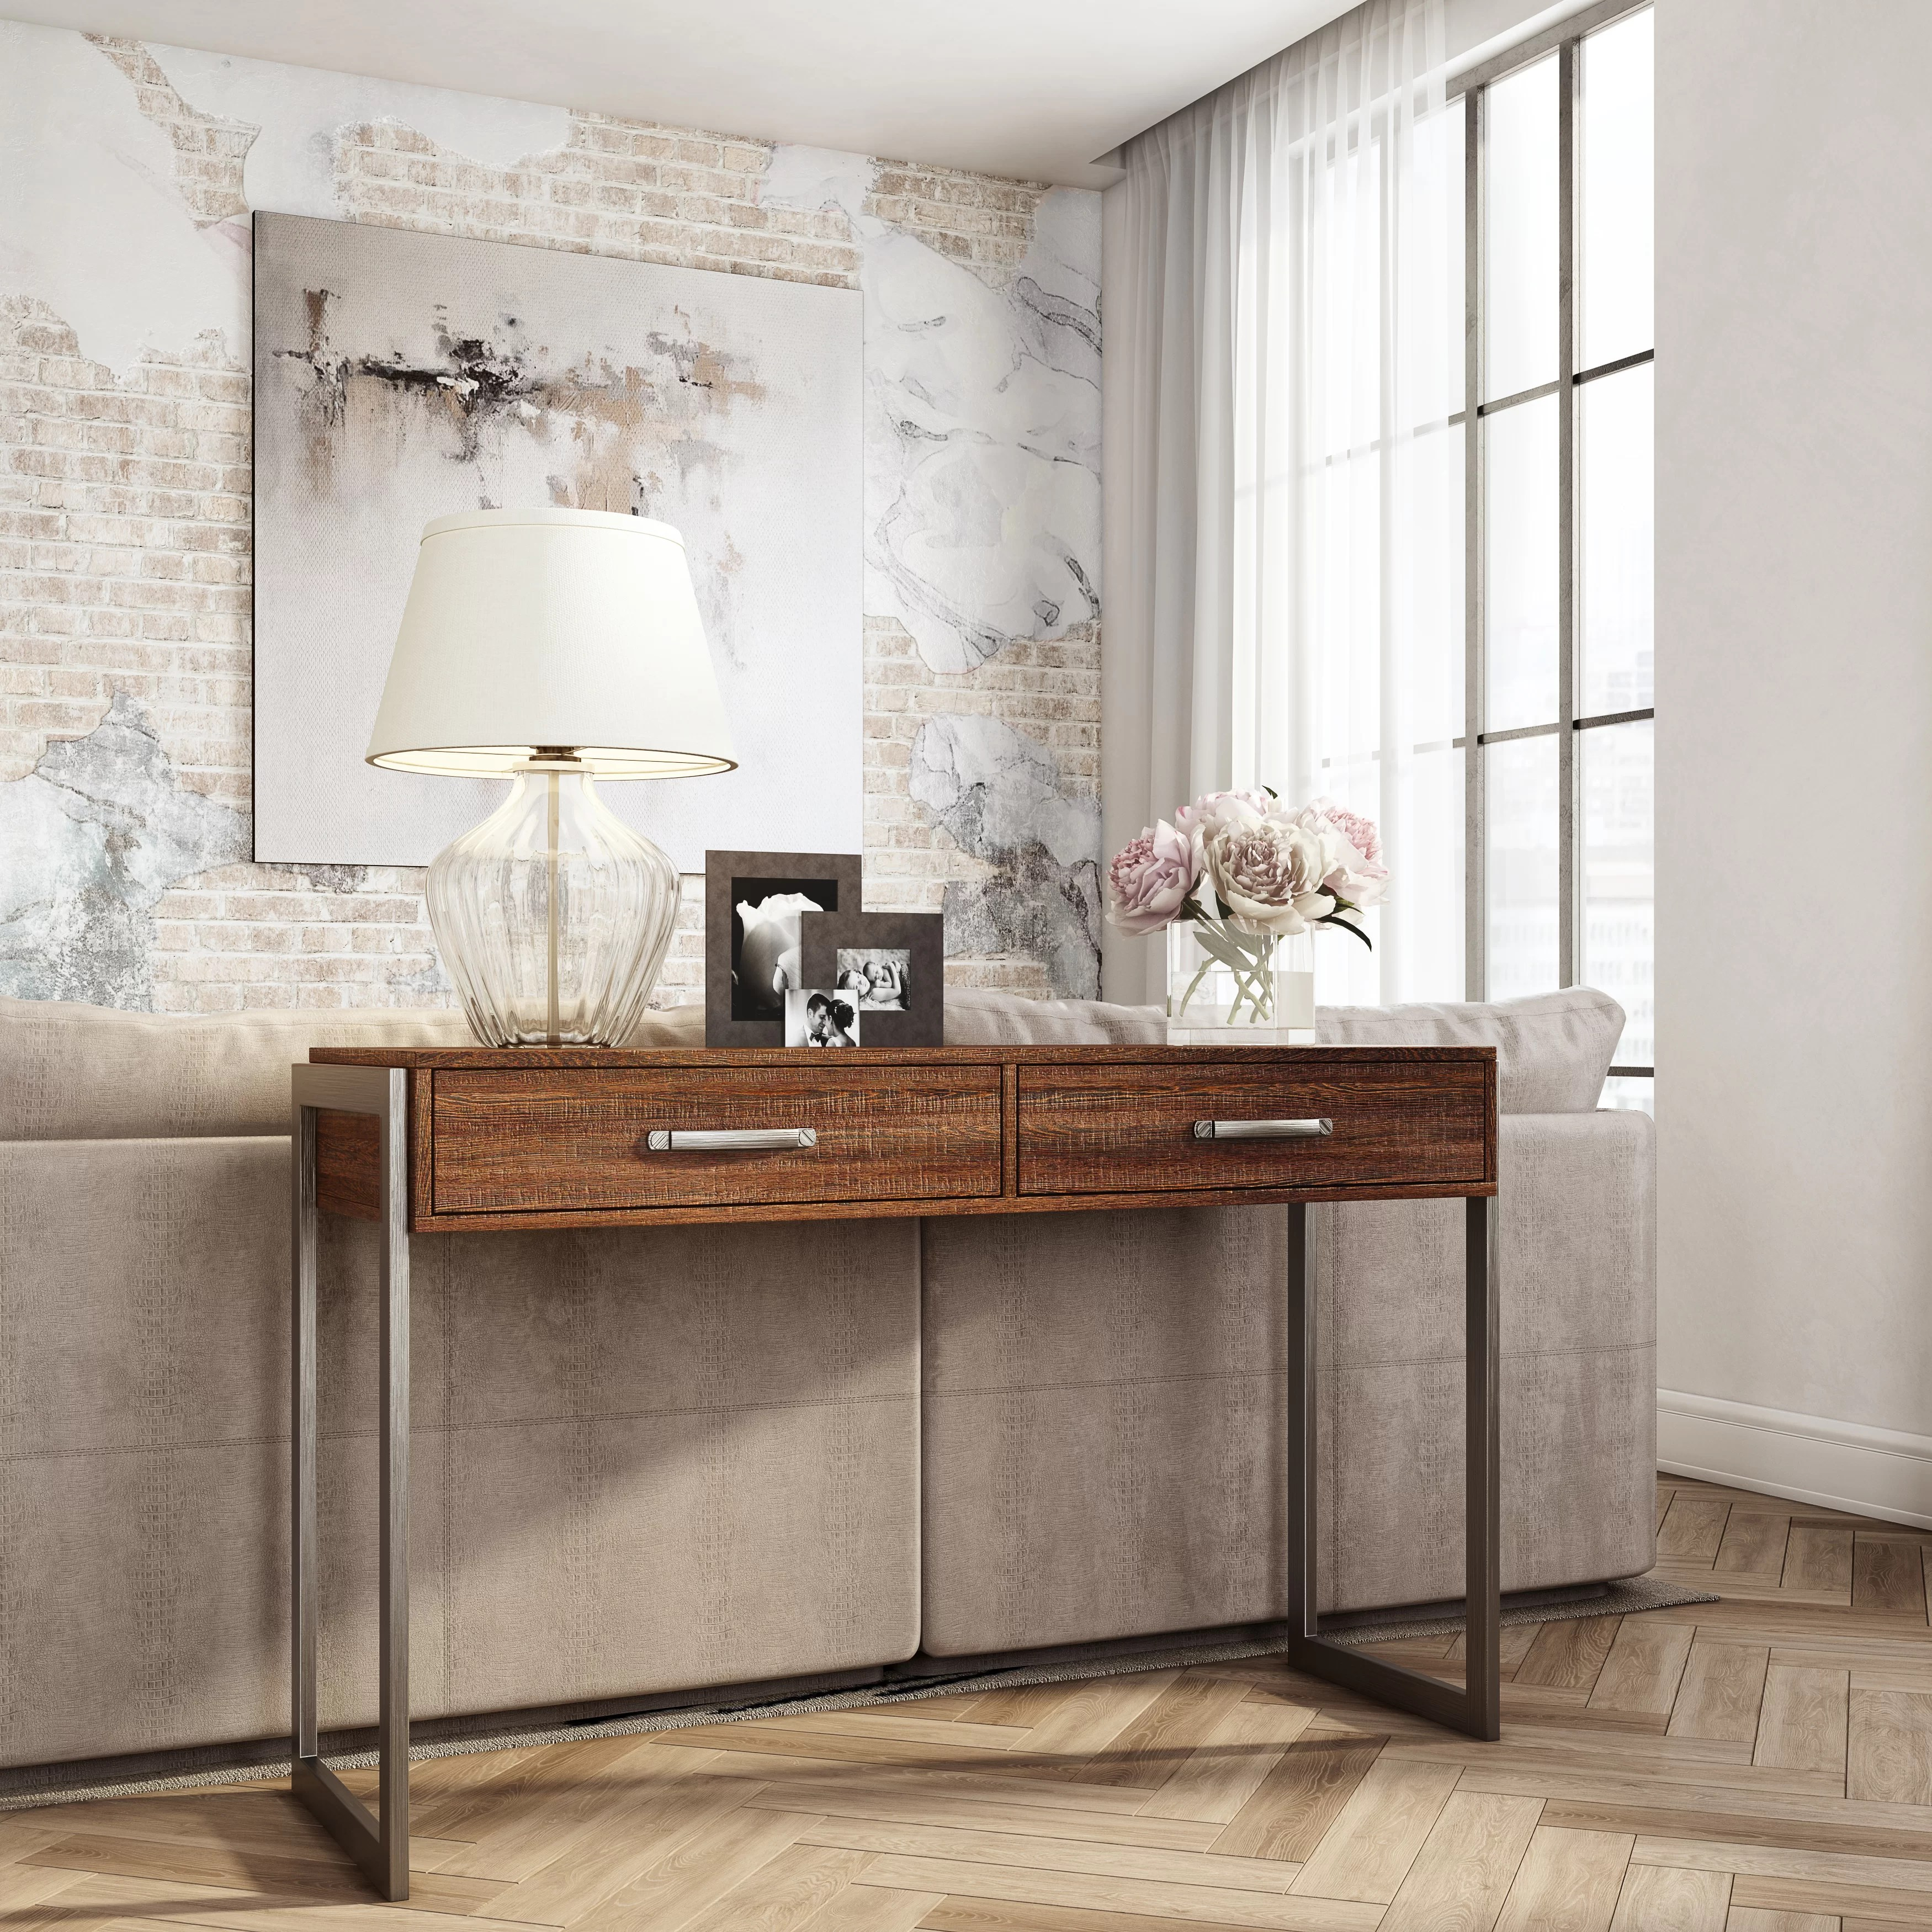 laroche heavily distressed rustic style 2 drawers storage console table